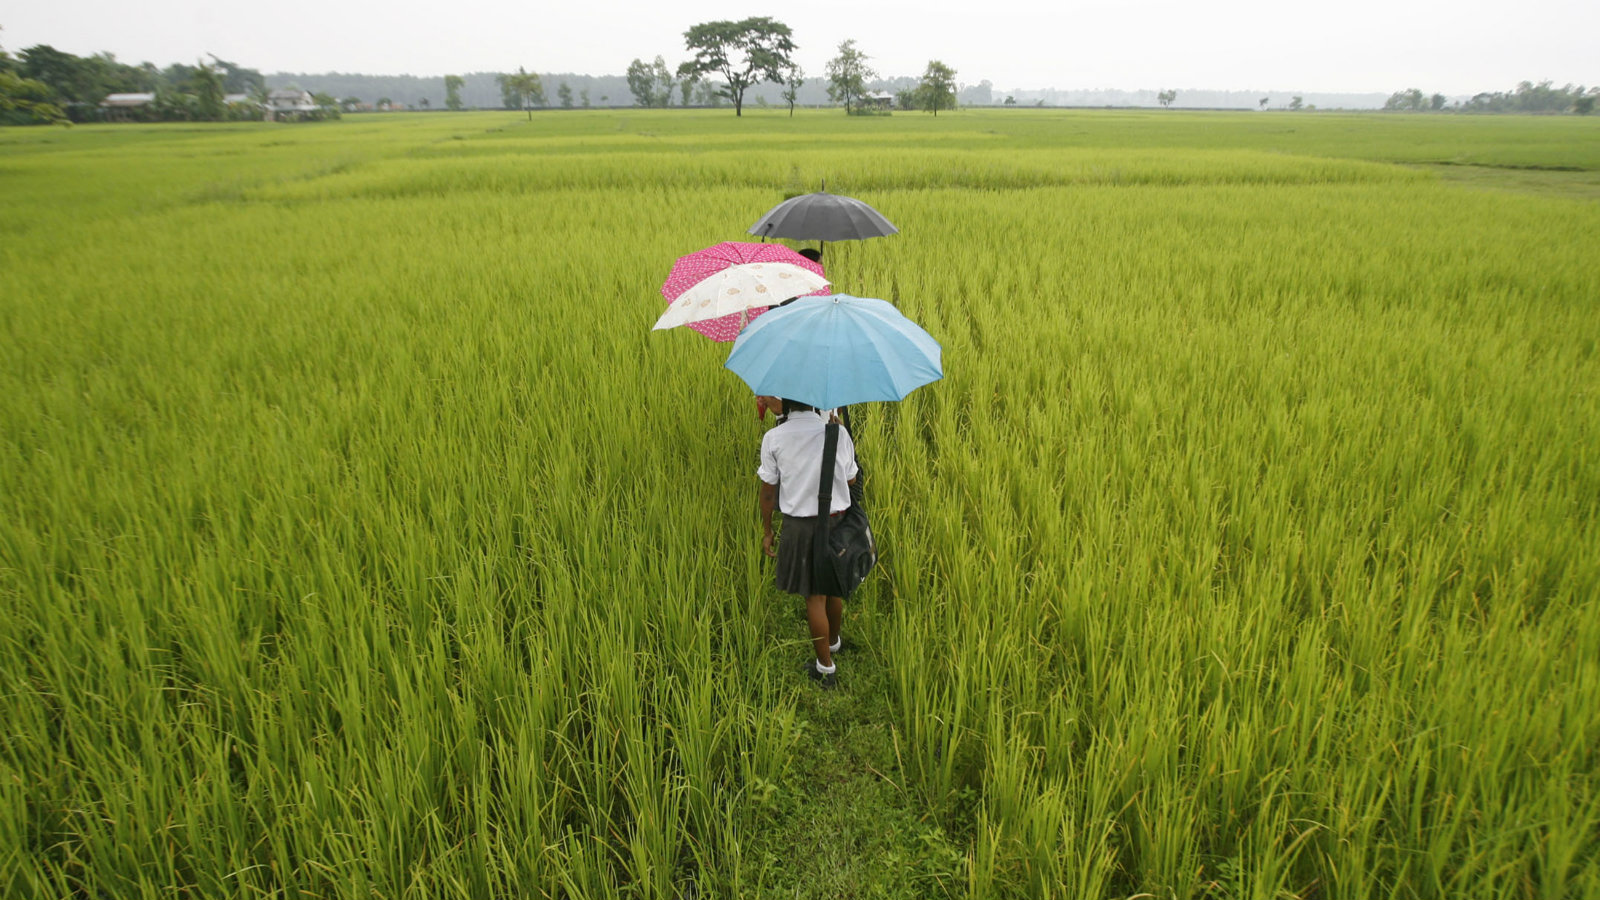 School children walk through a field at Koribari village on the outskirts of the northeastern Indian city of Siliguri August 25, 2008. Indian corn futures may trade range-bound on Monday with record exports and a lower acreage supporting and better-than-expected crop, aided by late rains, weighing, analysts said.